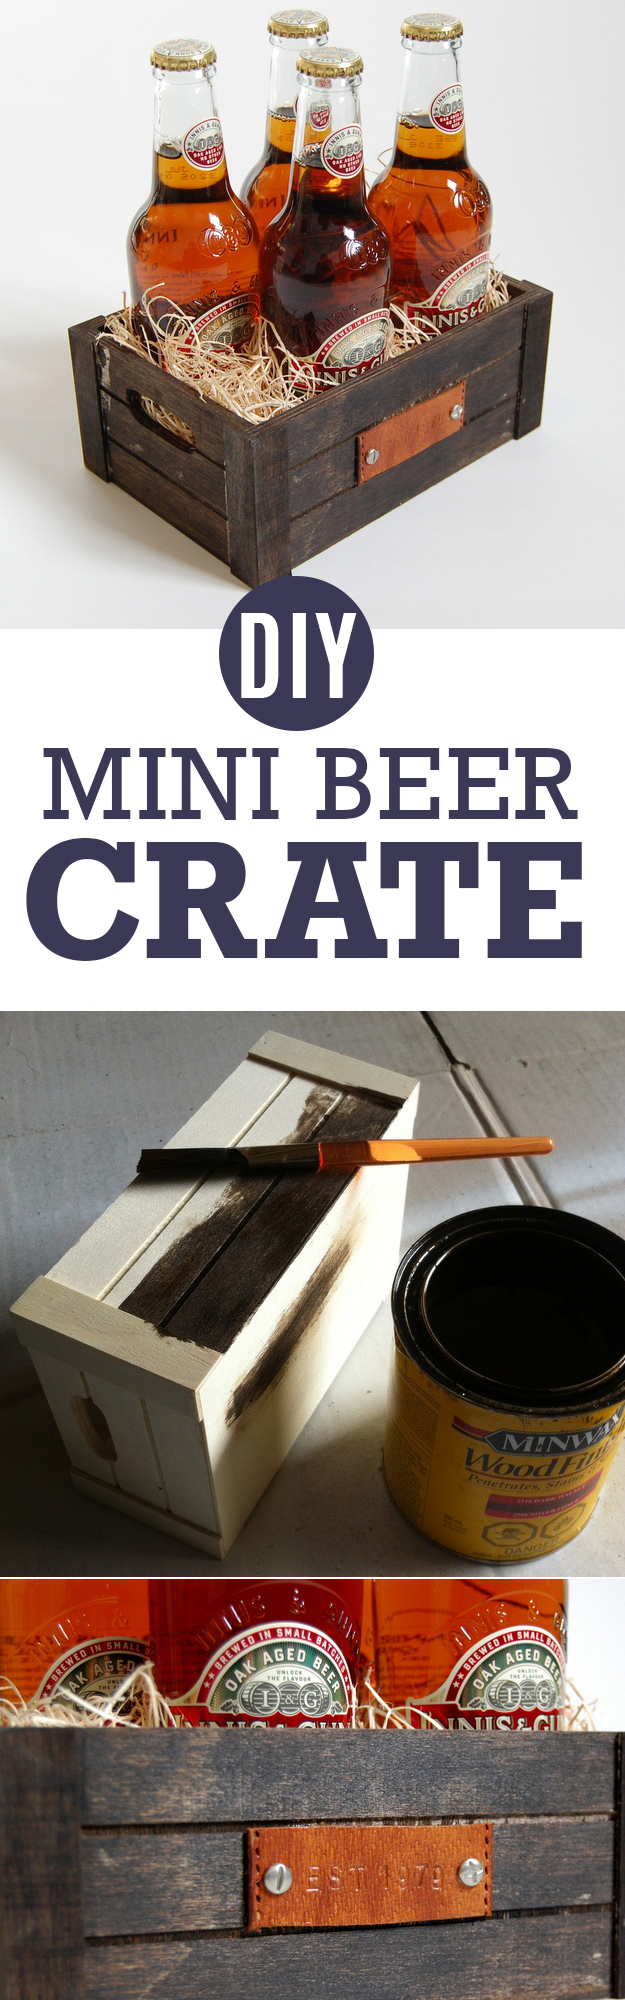 DIY Gifts For Men | Awesome Ideas for Your Boyfriend, Husband, Dad - Father , Brother Cool Homemade DIY Crafts Men Love to Receive for Christmas, Birthdays, Anniversaries and Valentine's Day | Personalized Mini Beer Crate